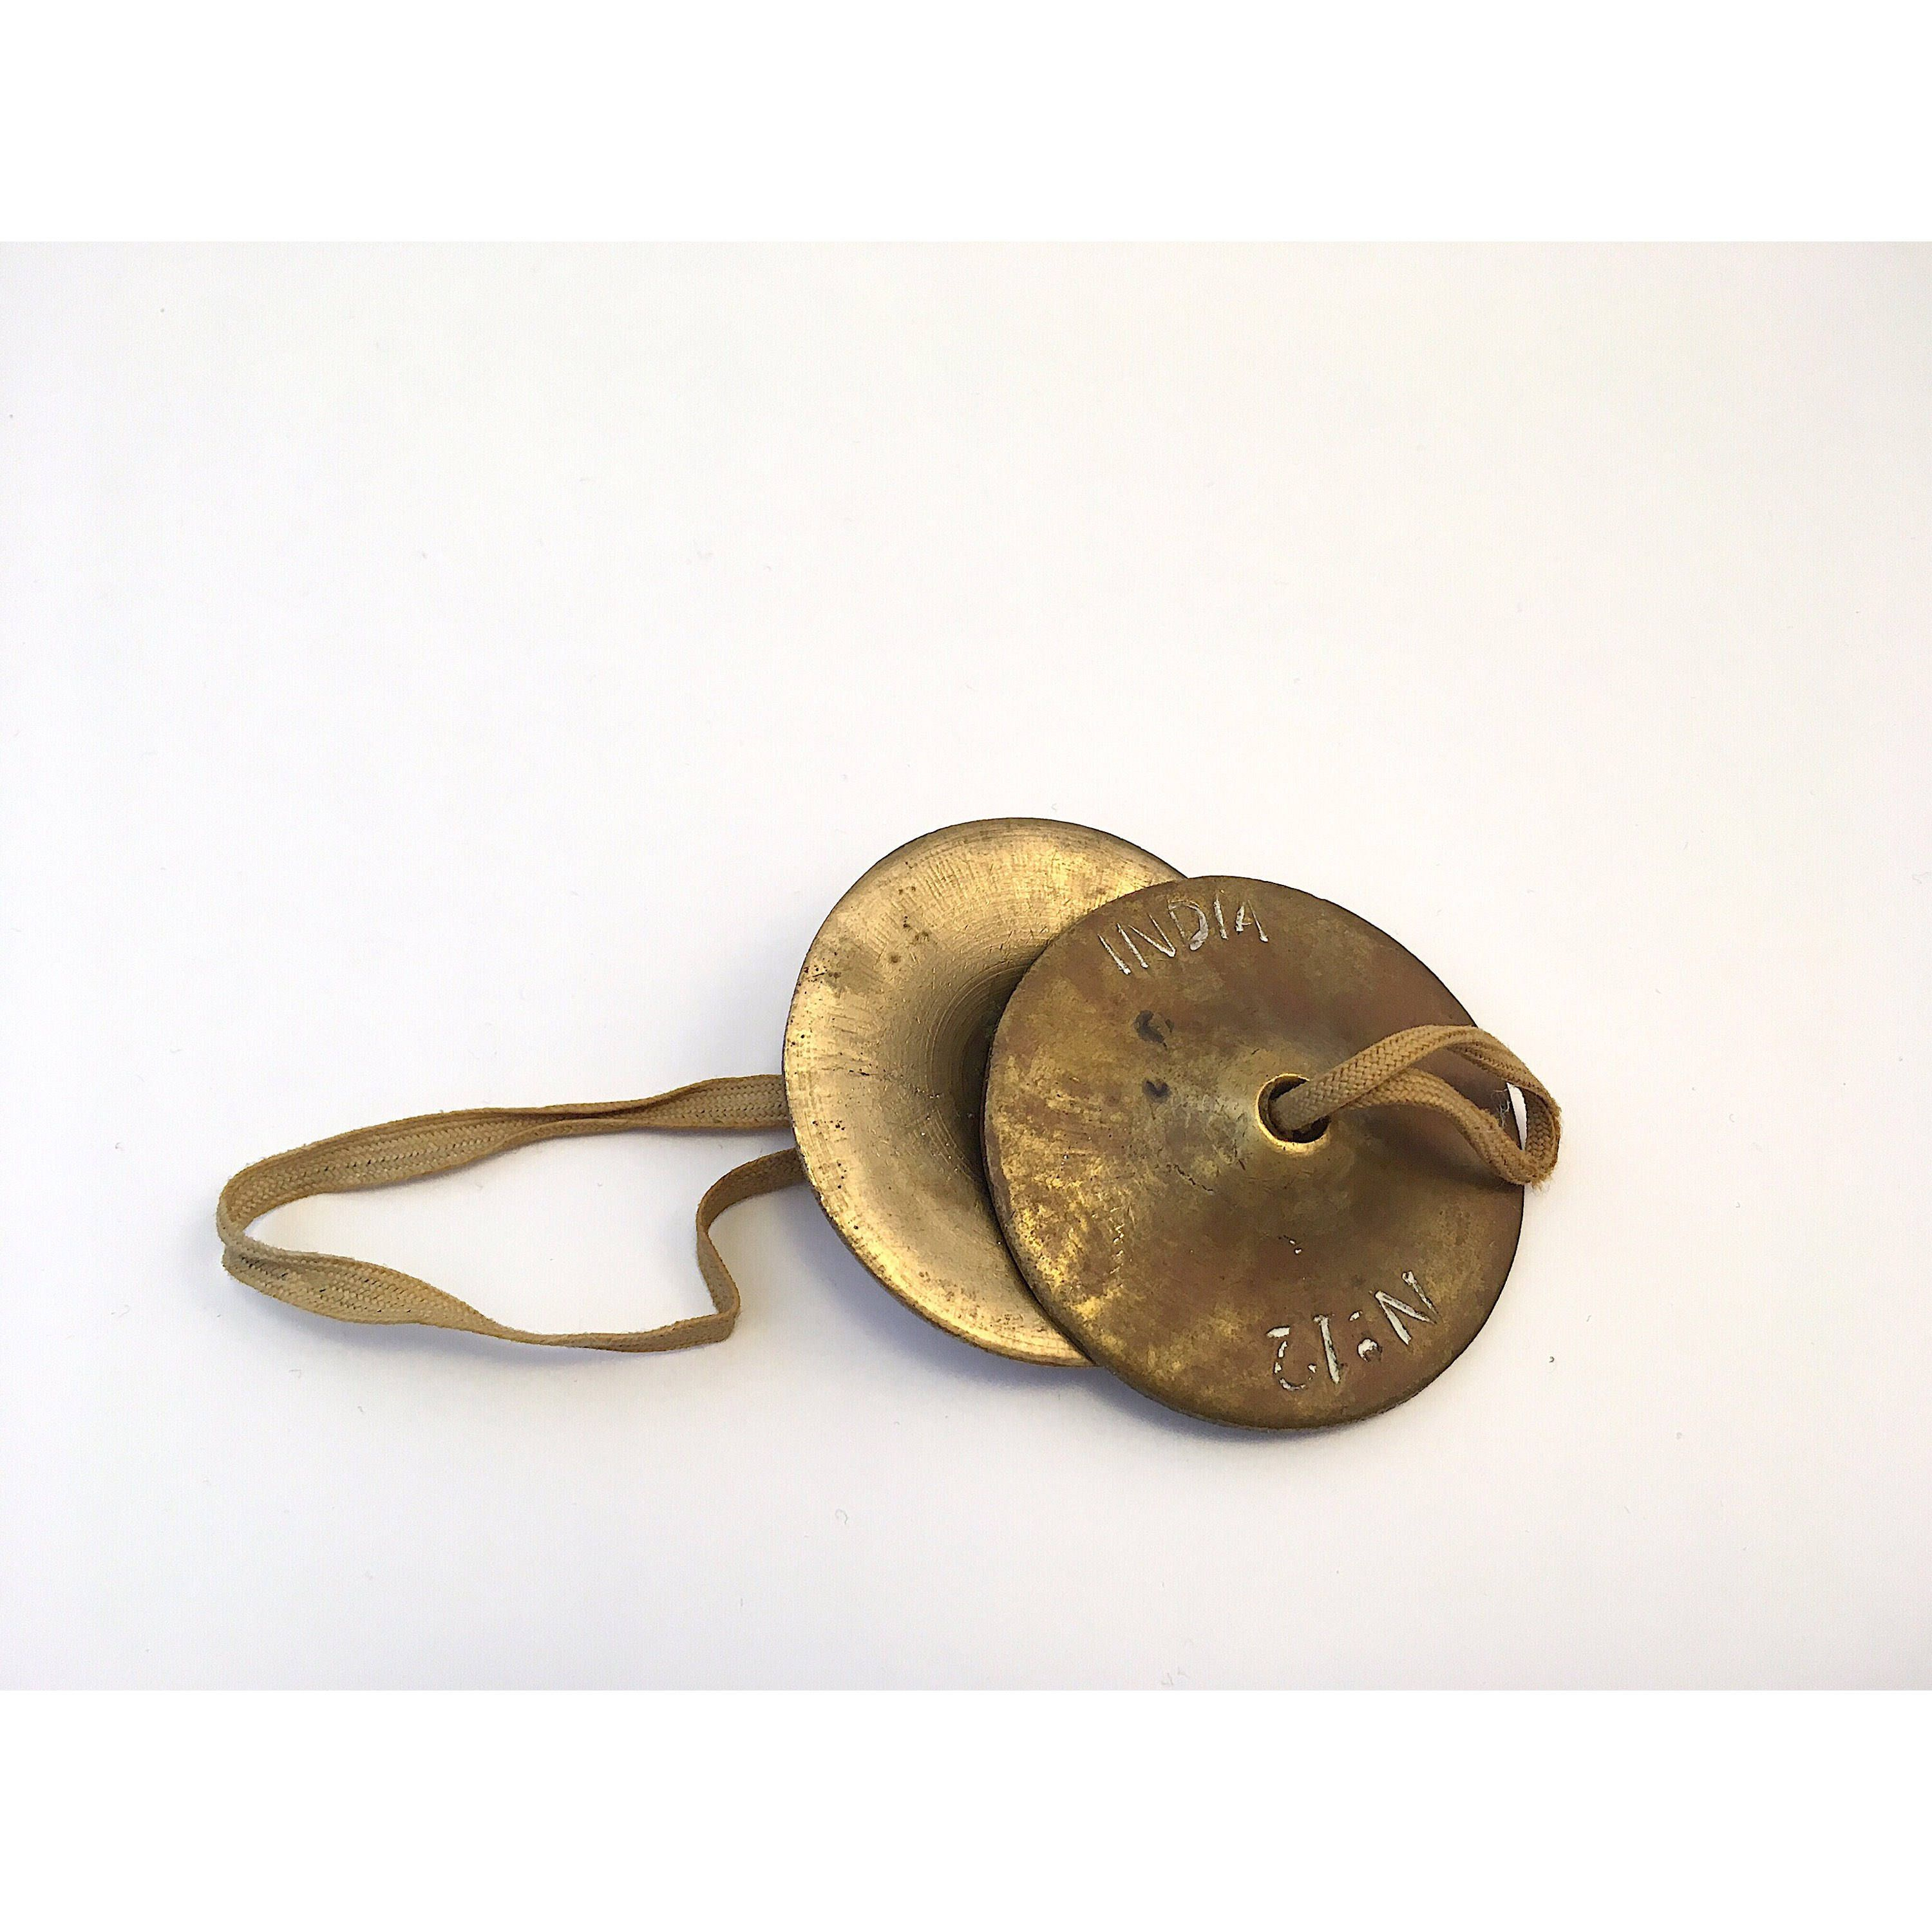 No Need To Spend A Fortune On These: Vintage Indian Brass No. 12 Collectible Hand Cymbals These